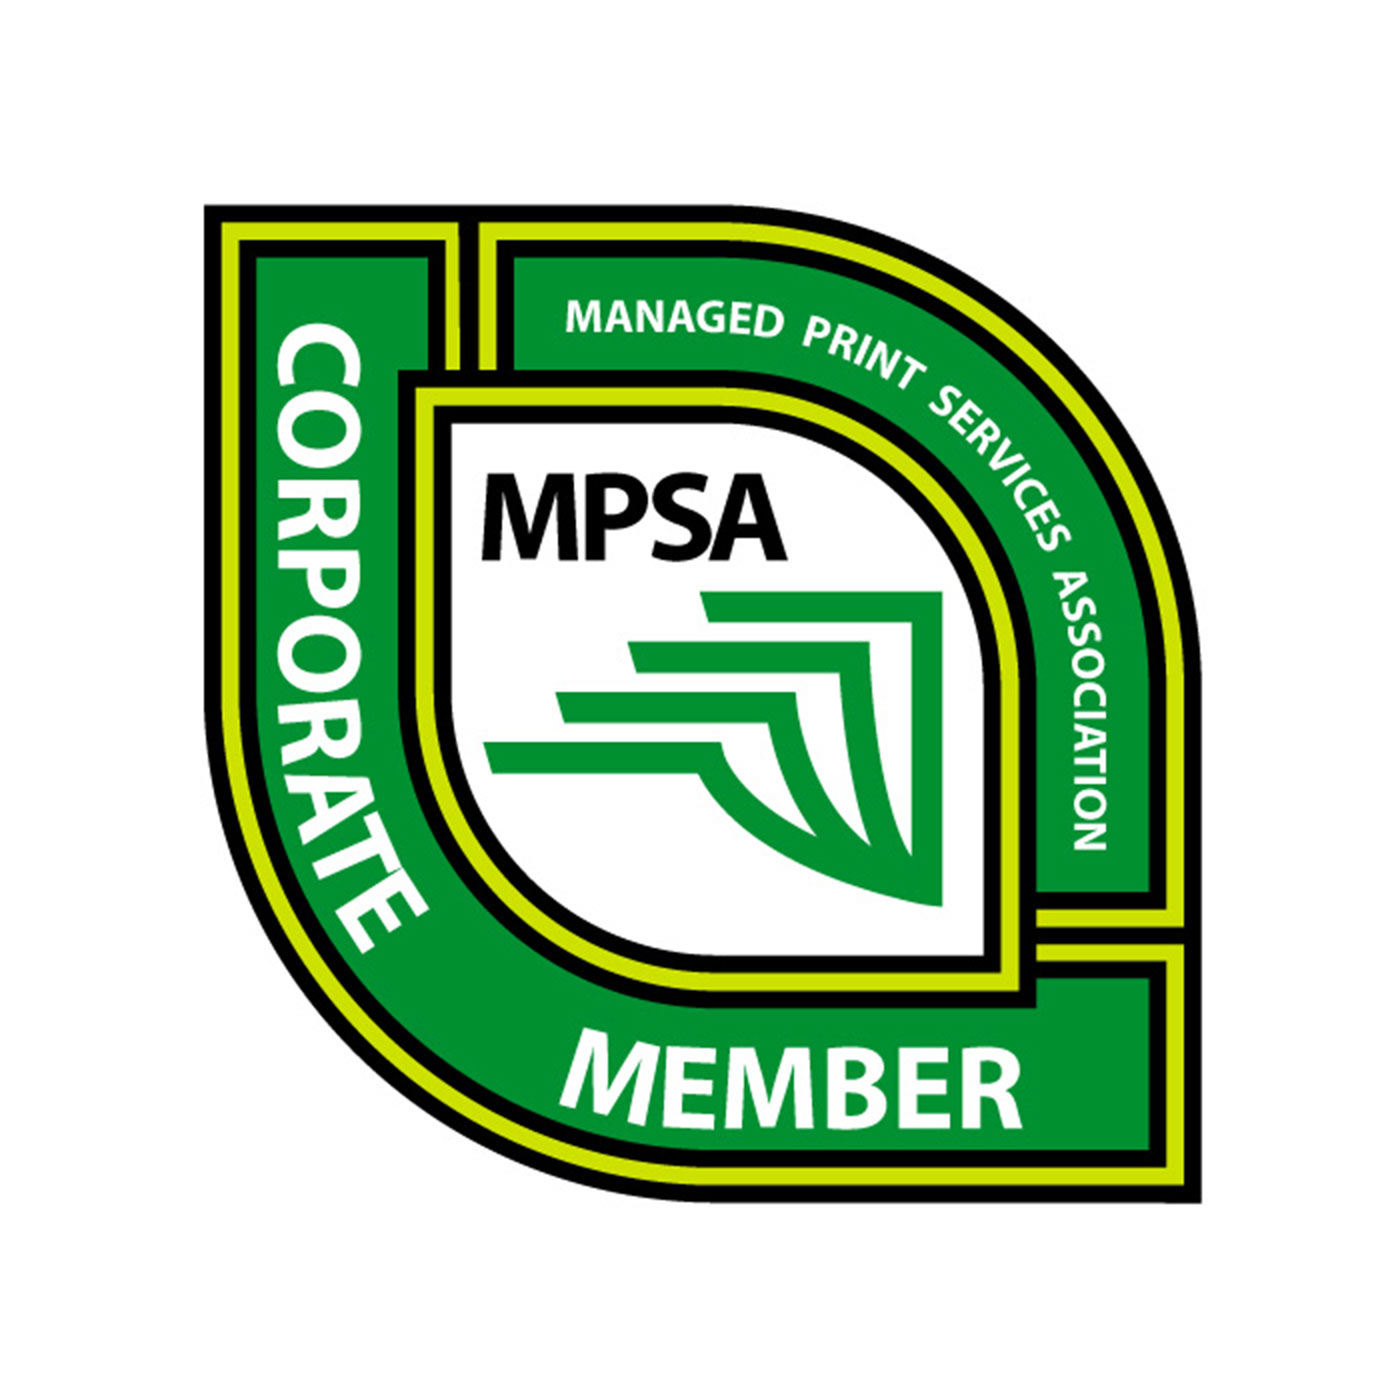 MPSA - Security; What & Why